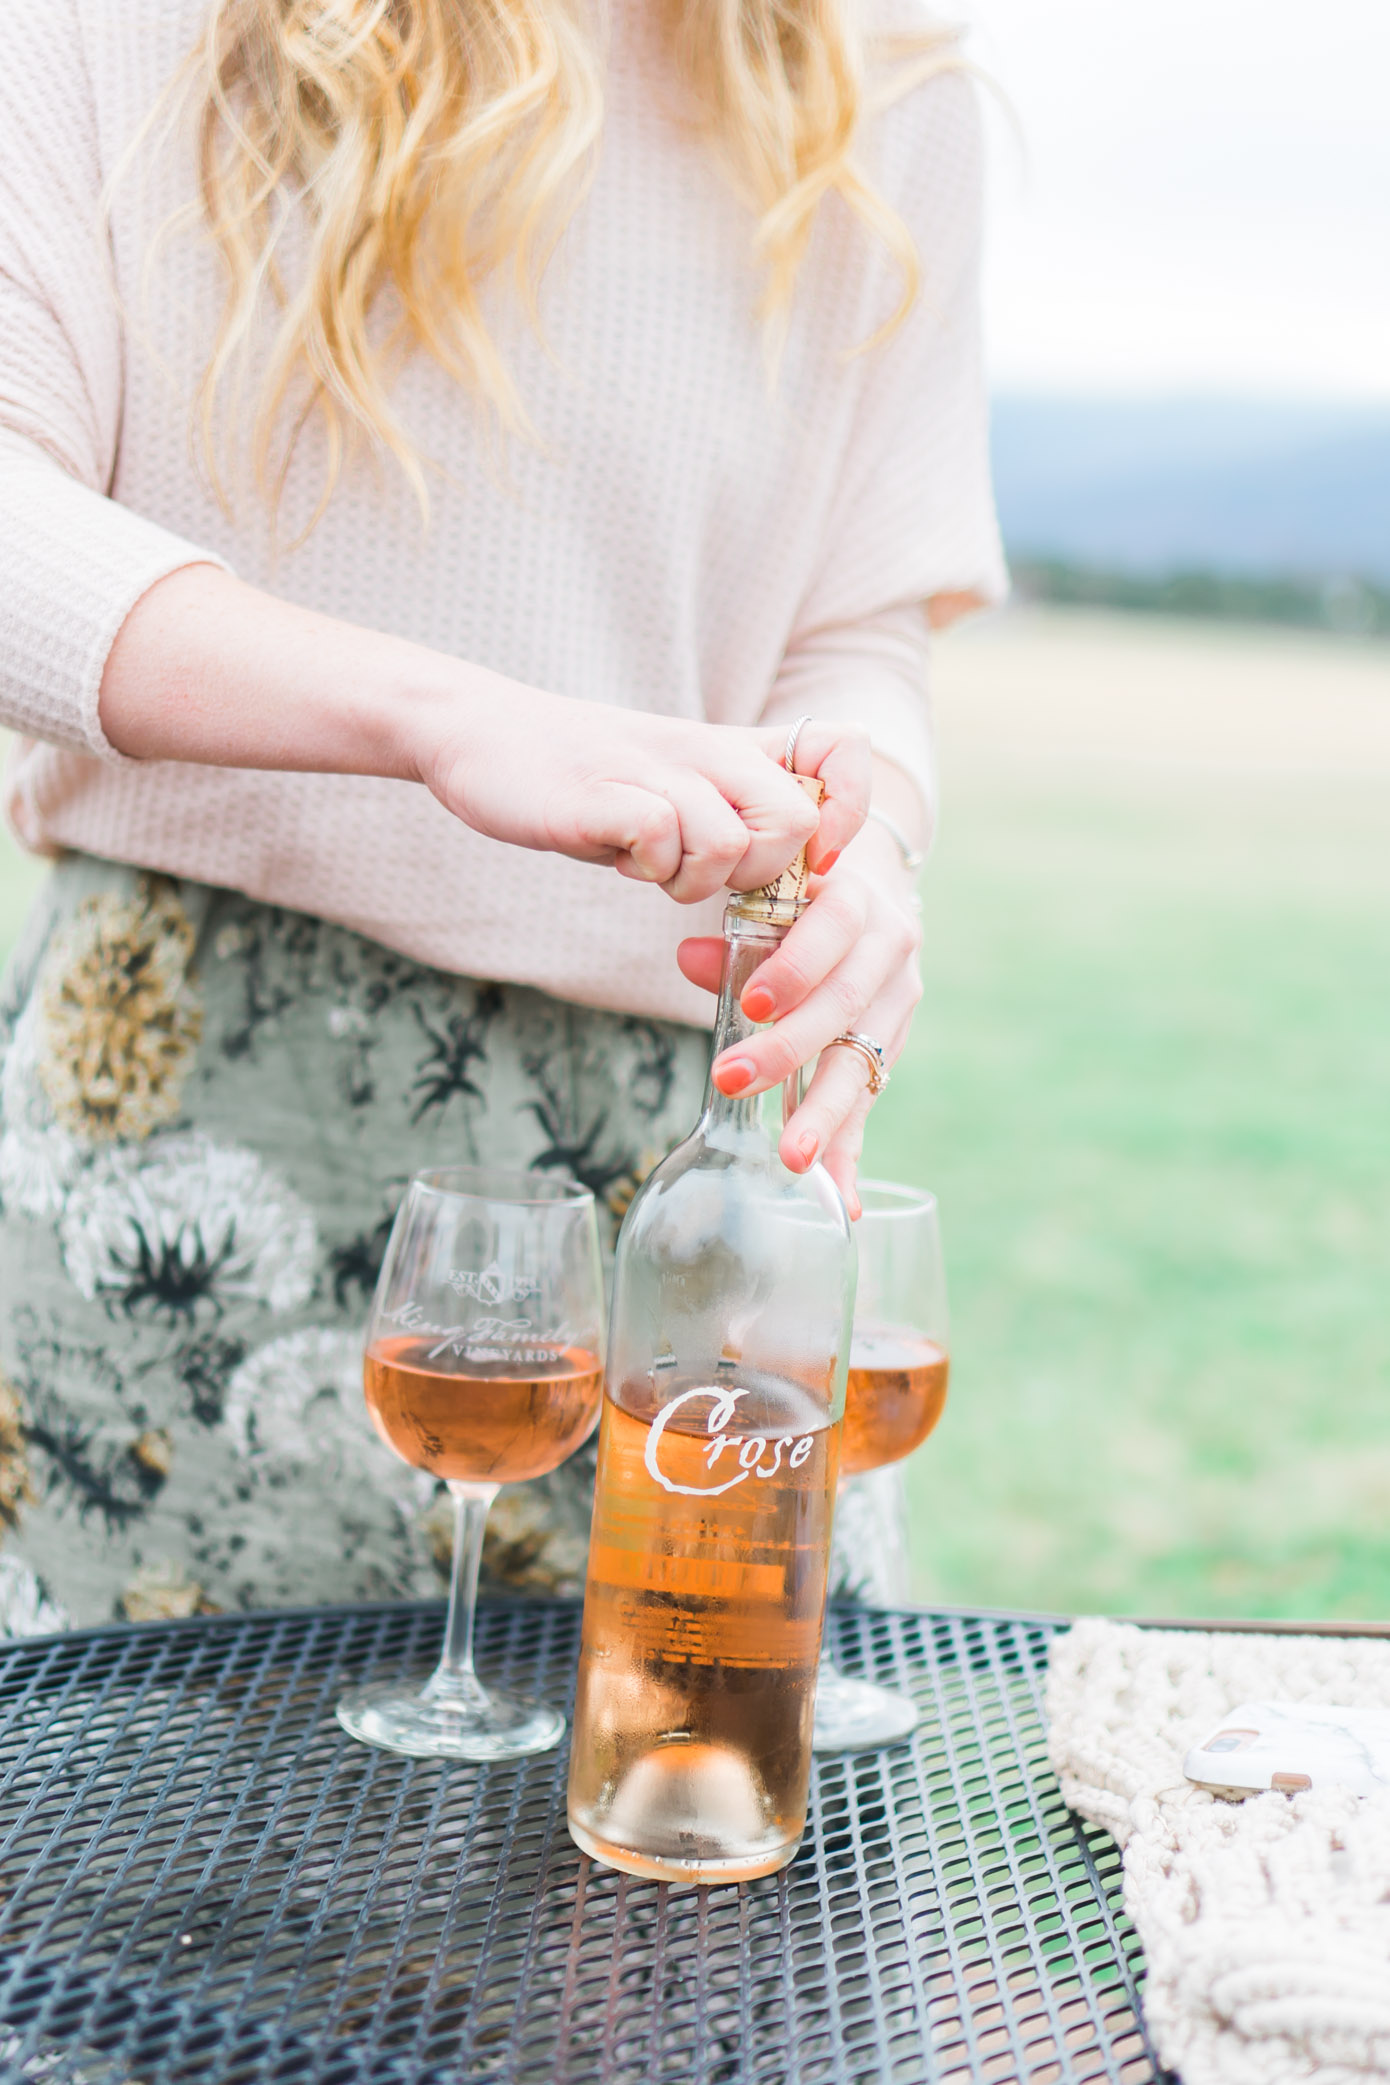 Charlottesville VA Travel Guide | Charlottesville Vineyards | Louella Reese Life & Style Blog